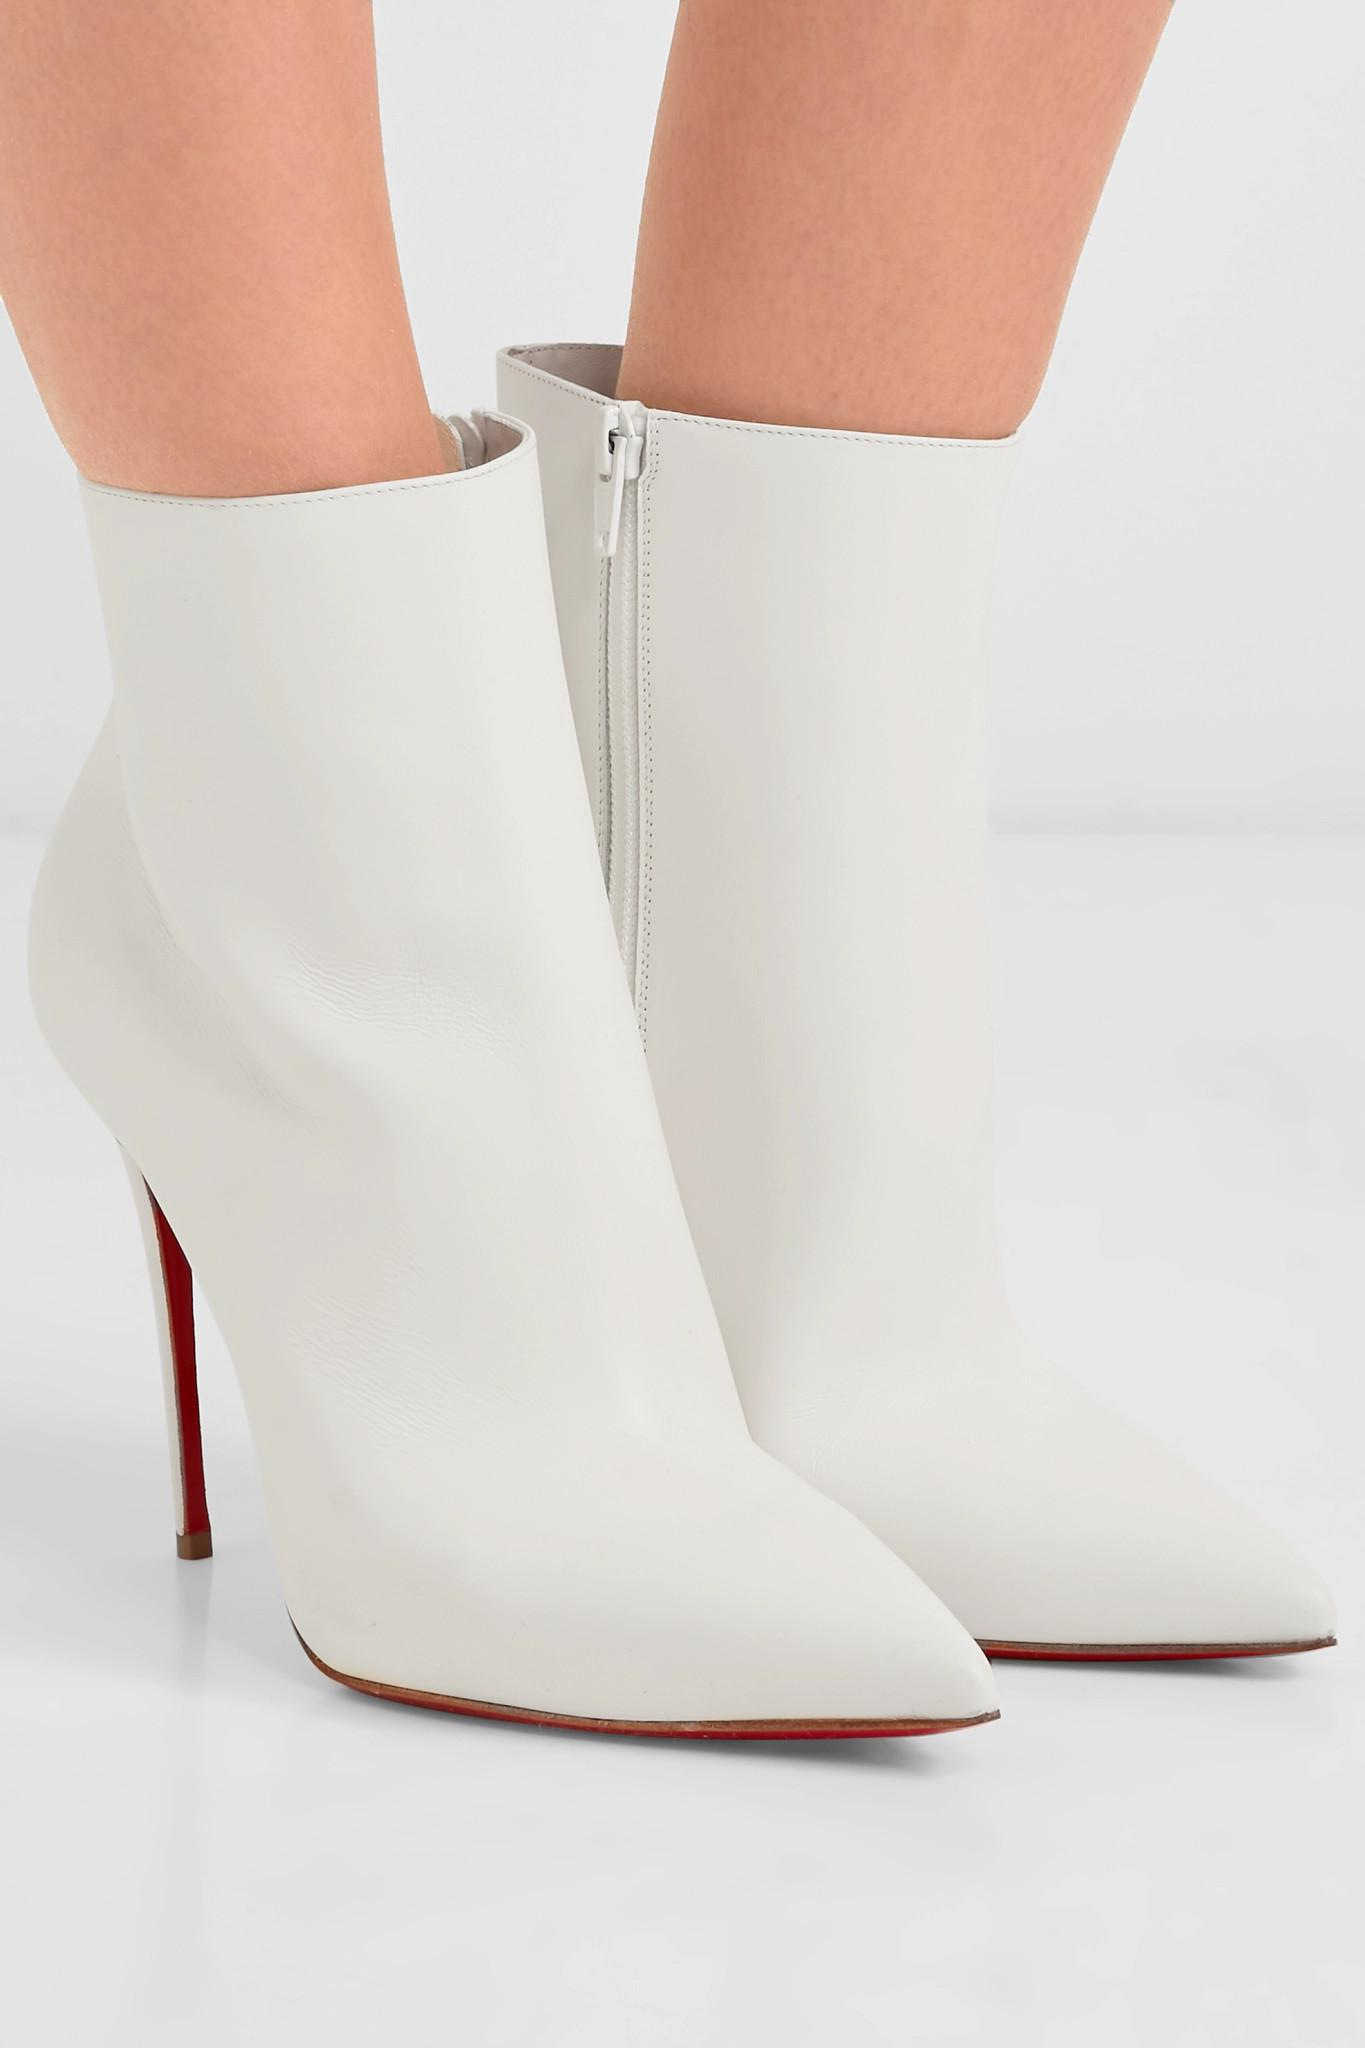 b19fa5caf01e Christian Louboutin - White So Kate 100 Leather Ankle Boots - Lyst. View  fullscreen